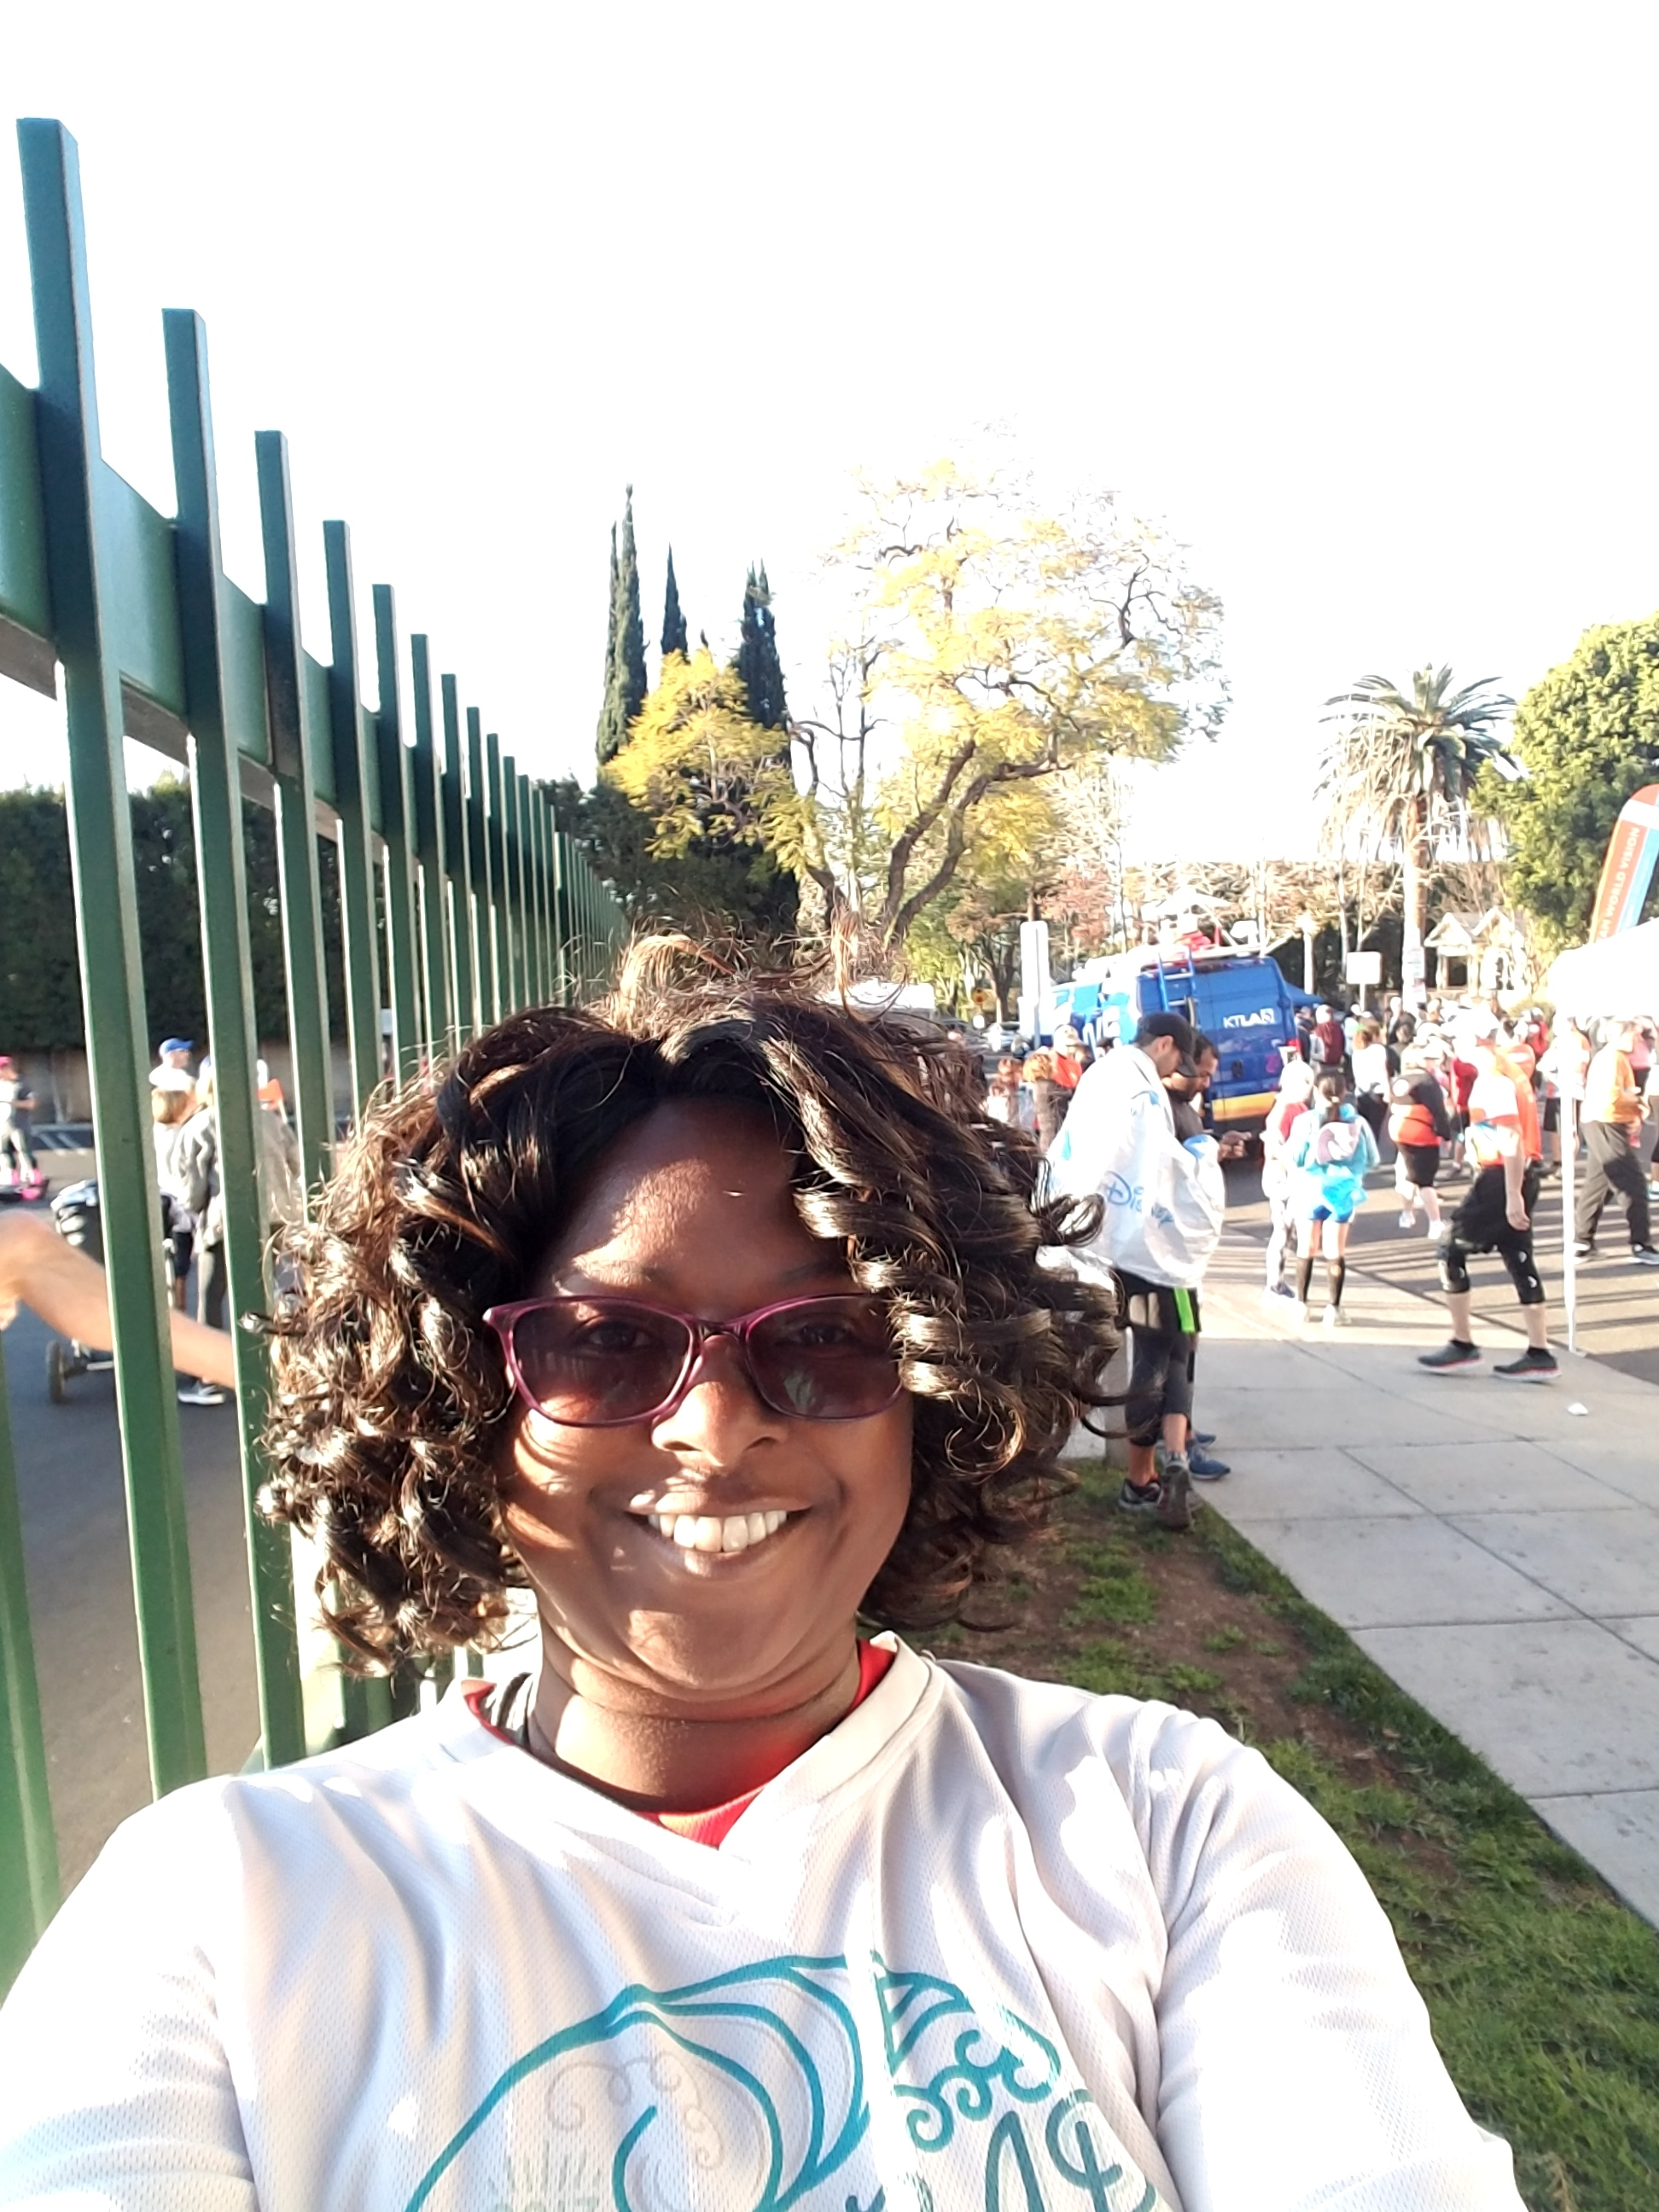 Me (Rahbin Shyne) and other half-marathoners warming up, waiting to join the LA Marathon at the half-way point in West Hollywood.